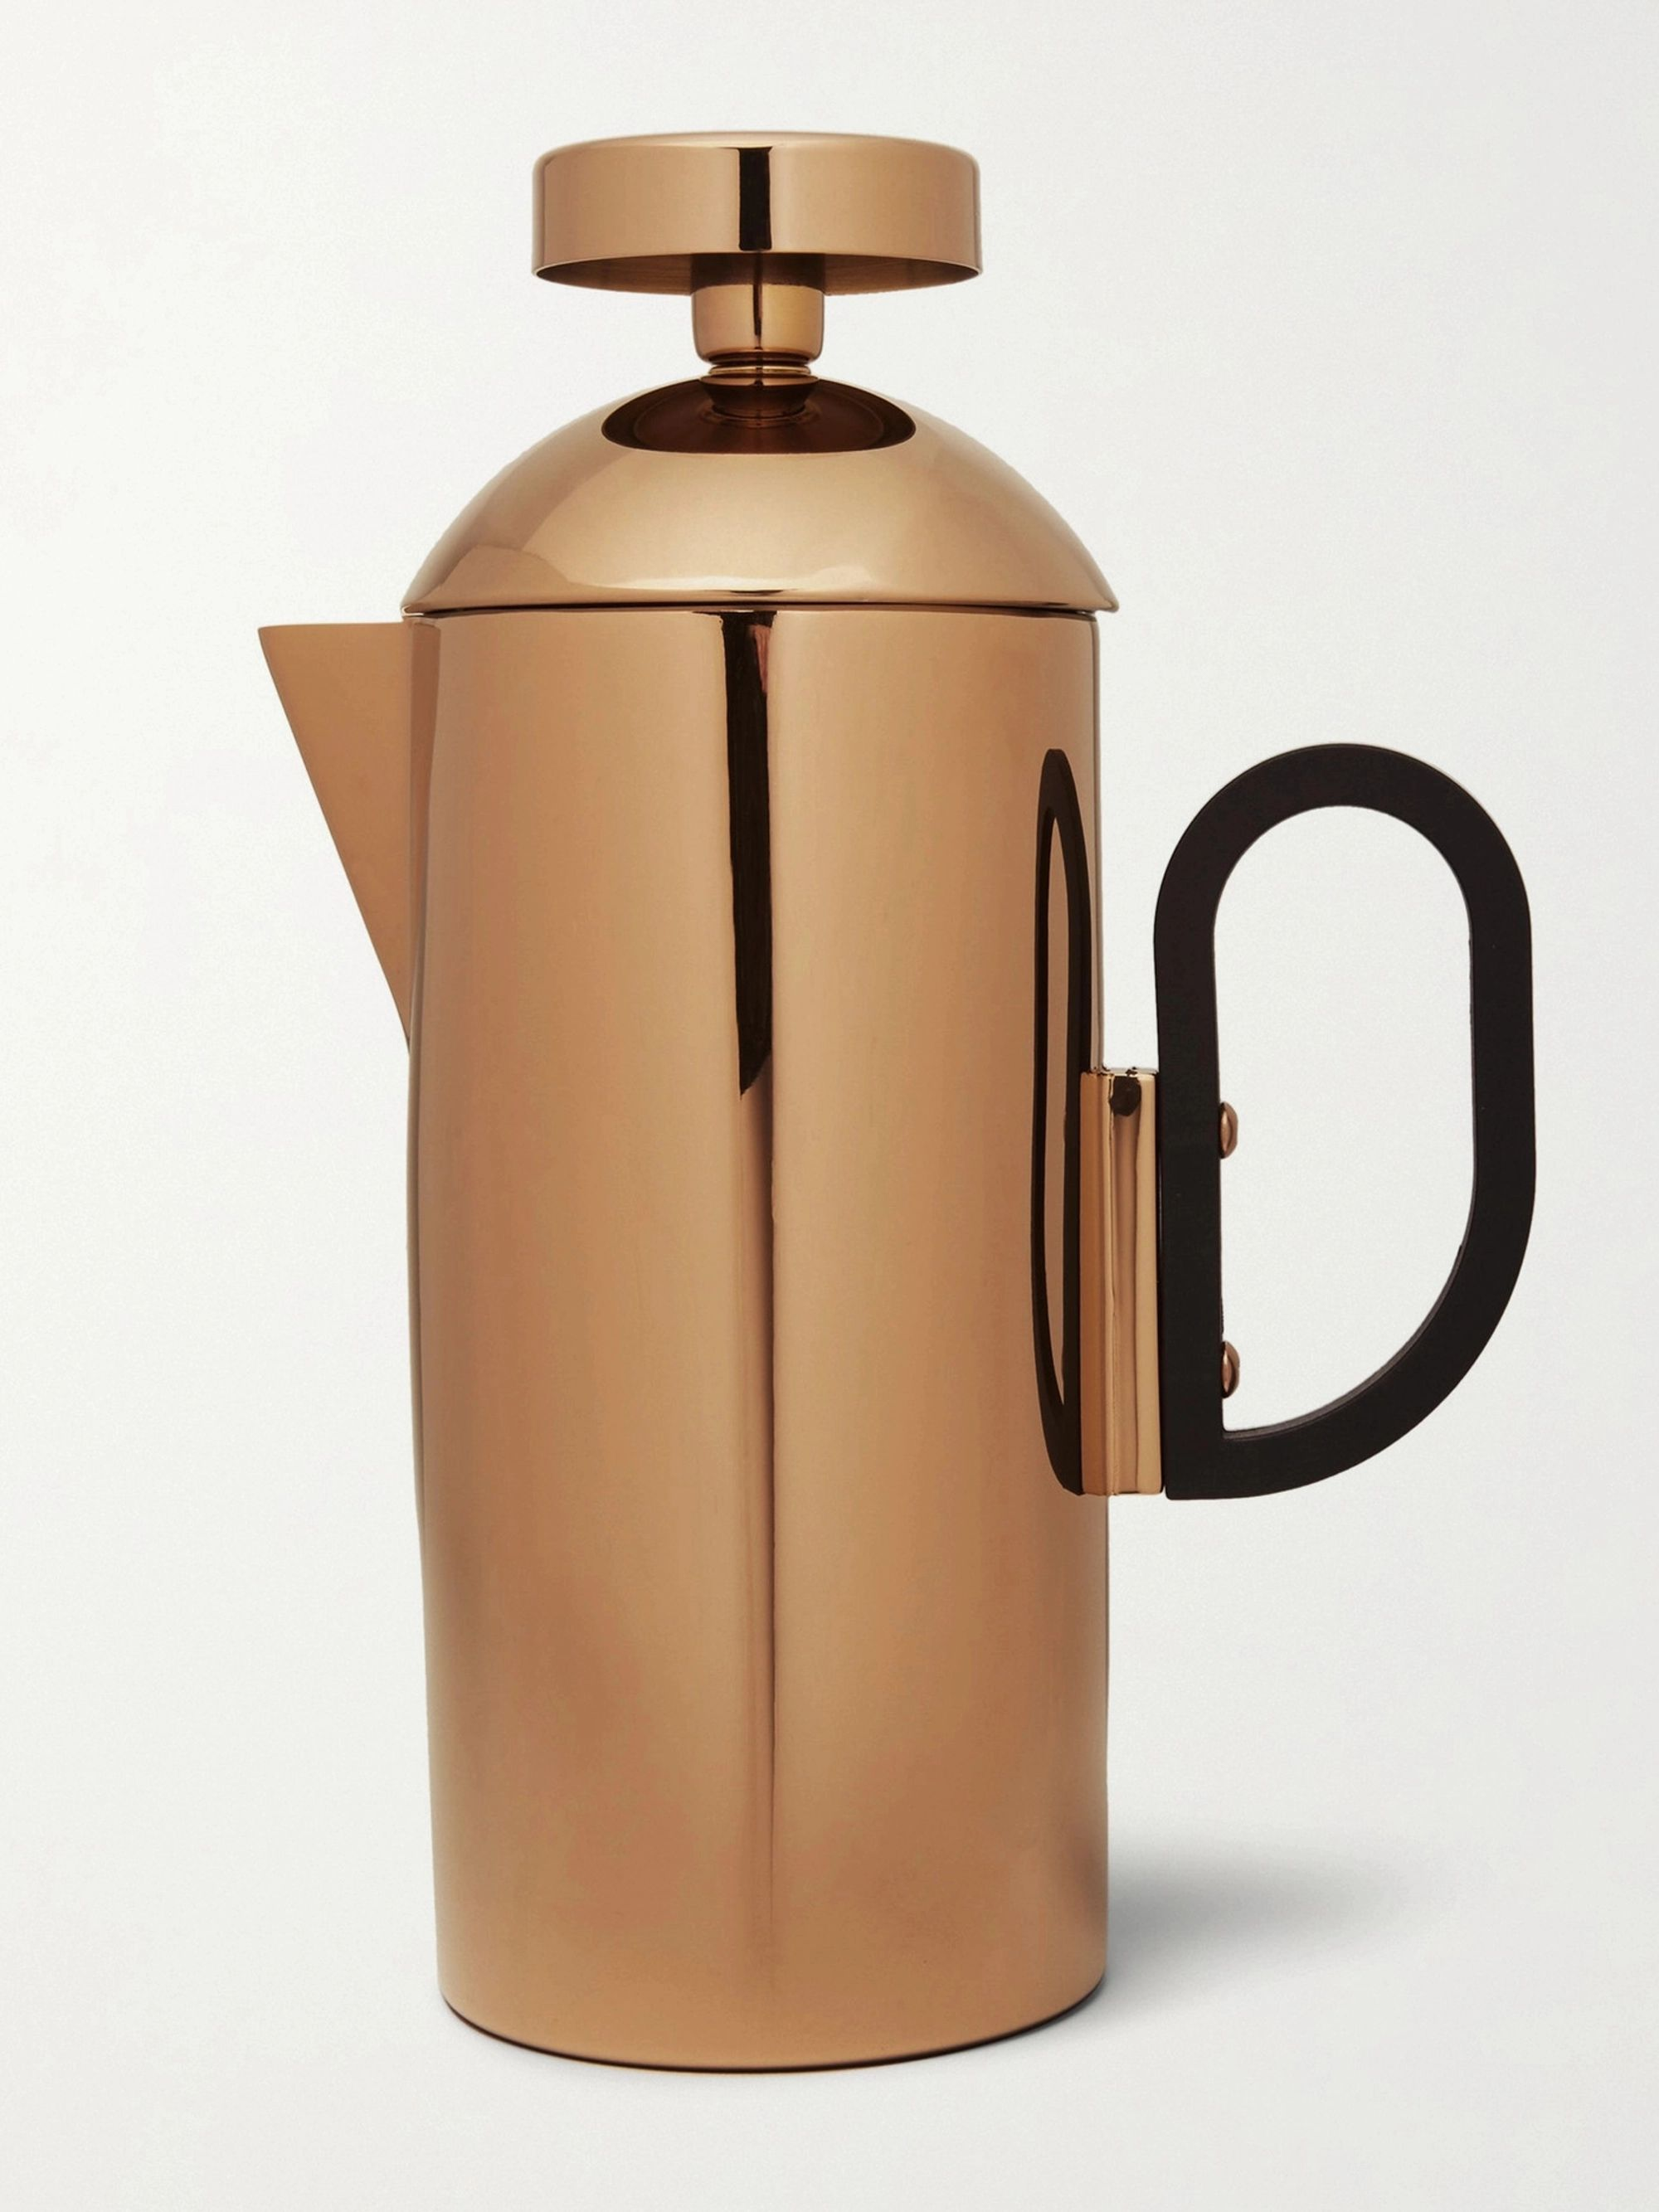 Tom Dixon Brew Copper-Plated Cafetiere